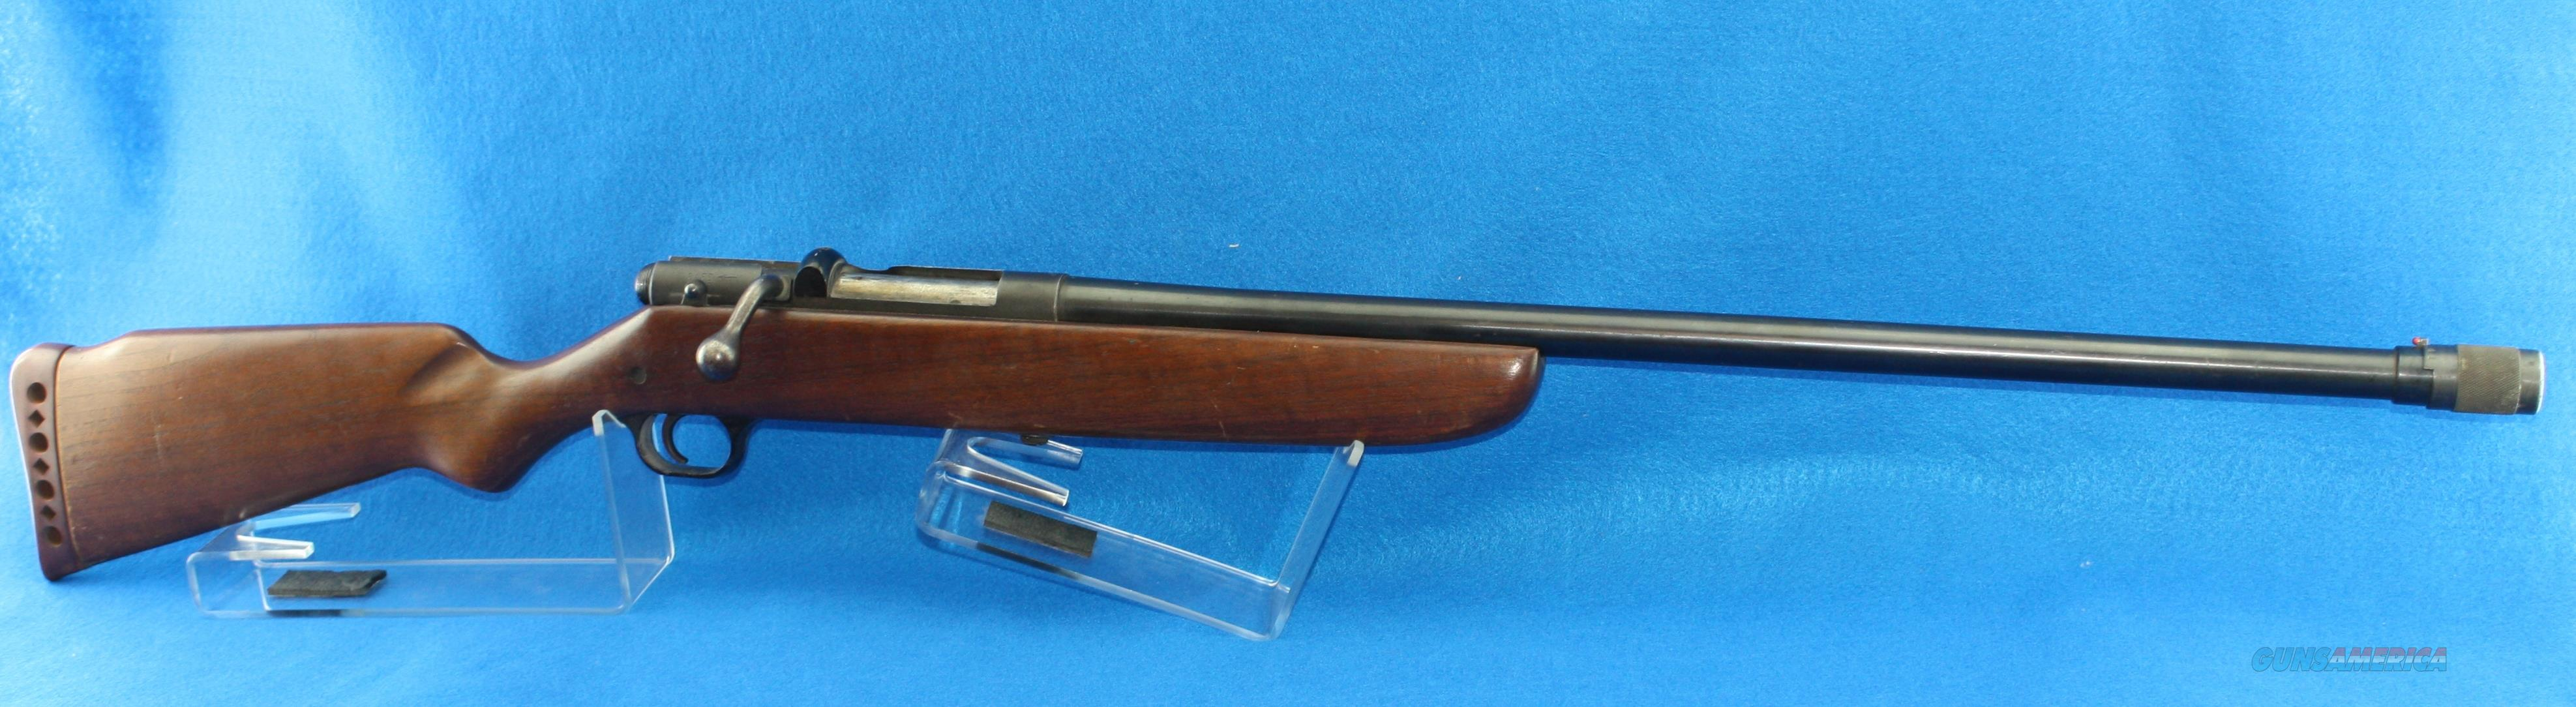 H&R MODEL 349 GAMEMASTER, 12 GA  Guns > Shotguns > Harrington & Richardson Shotguns